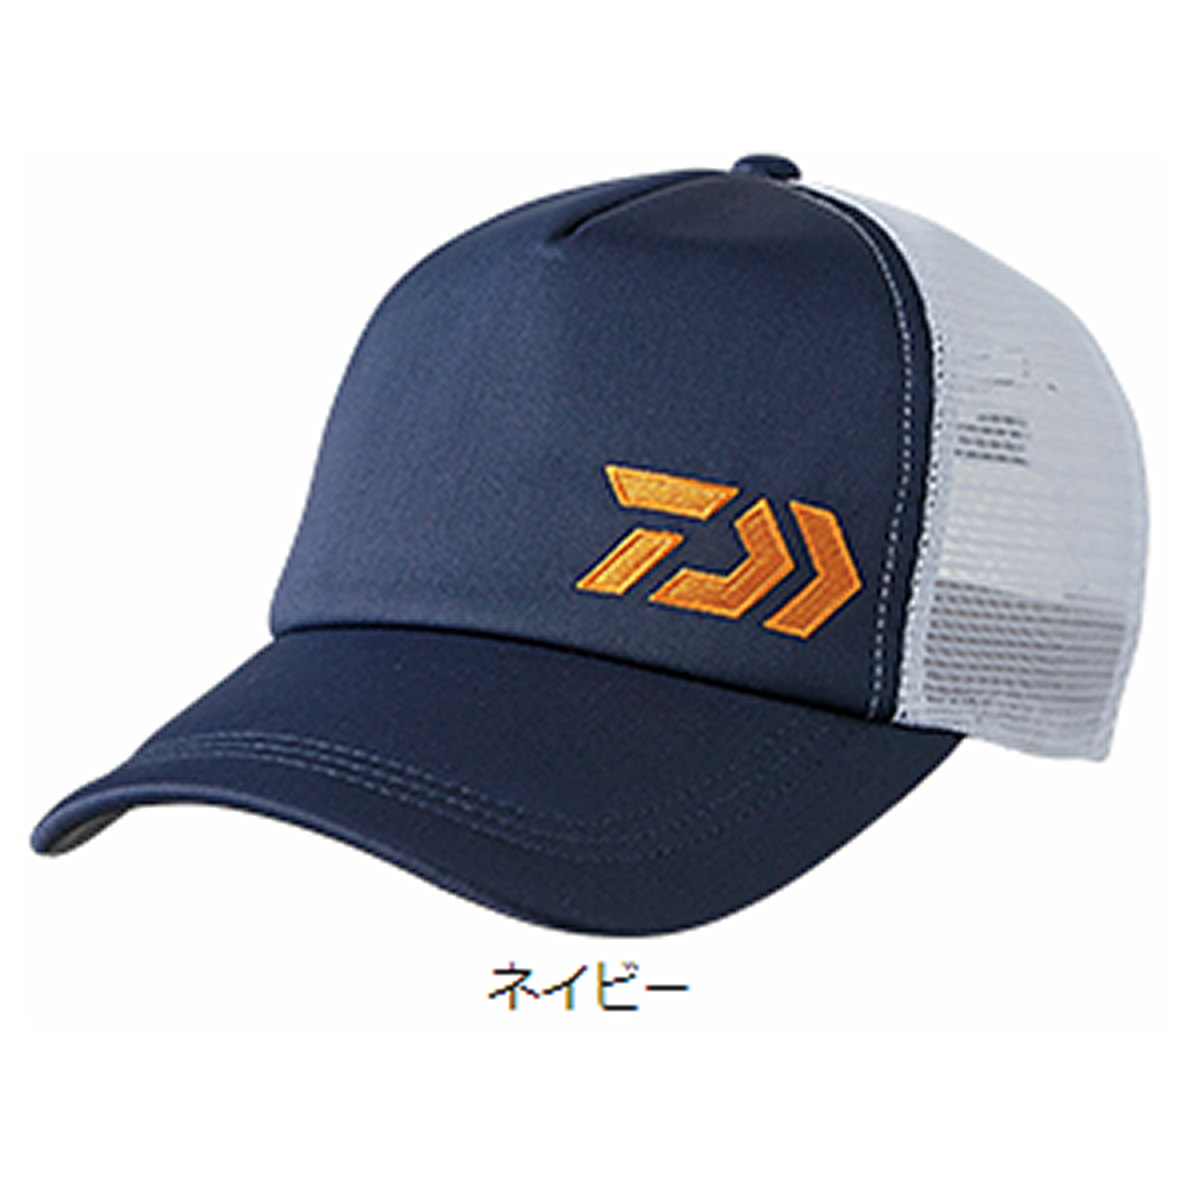 768b8df42315 Fishing Tackle Point: Daiwa half mesh cap DC-64008-free navy ...